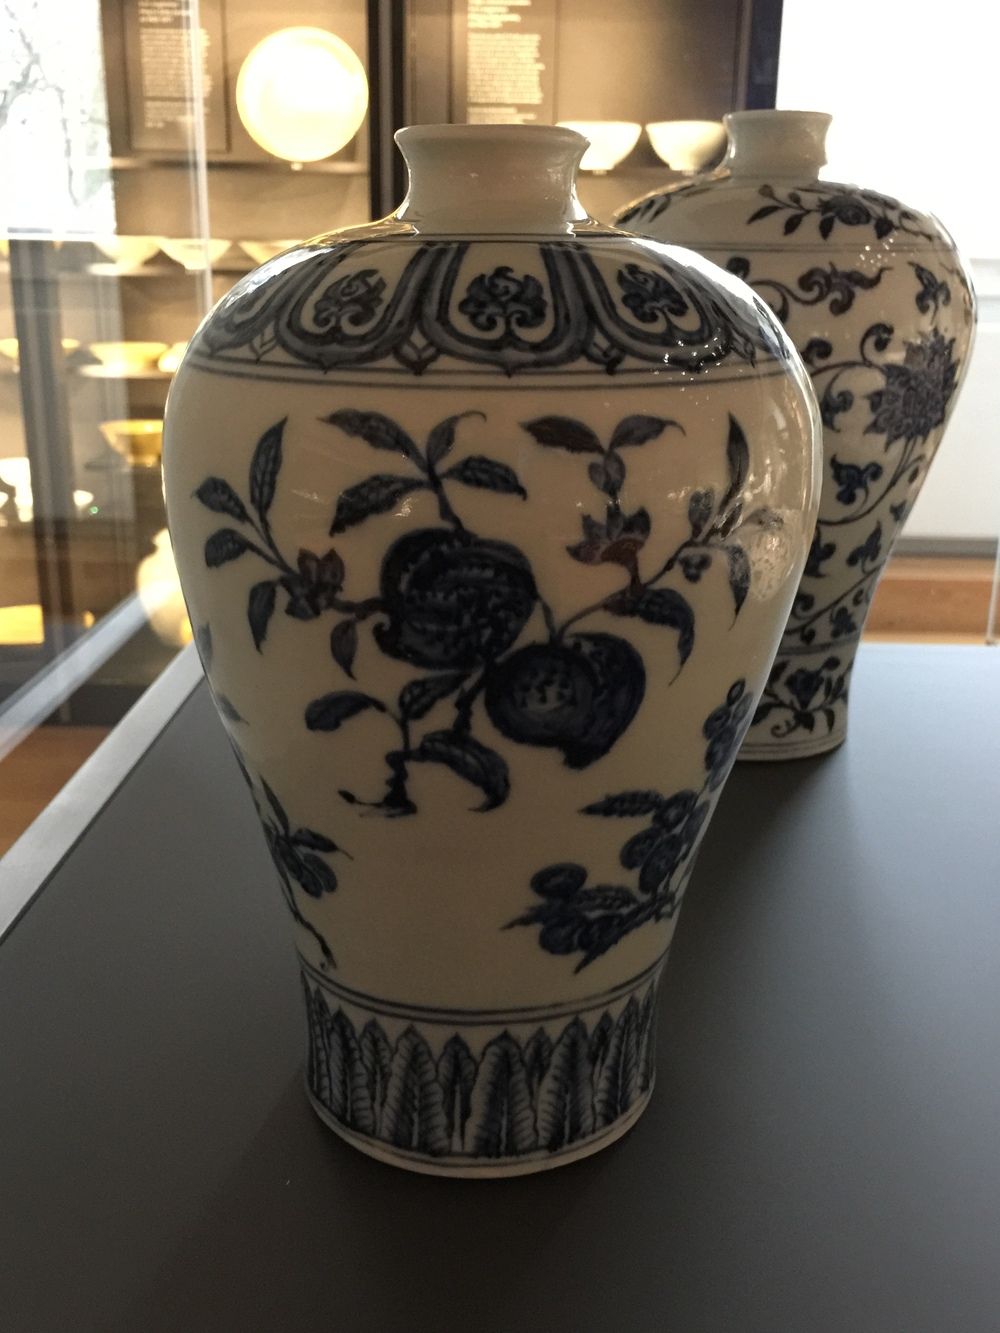 Chinese-Porcelain-British-Museum-Percival-David-jessewaugh.com-69.jpg